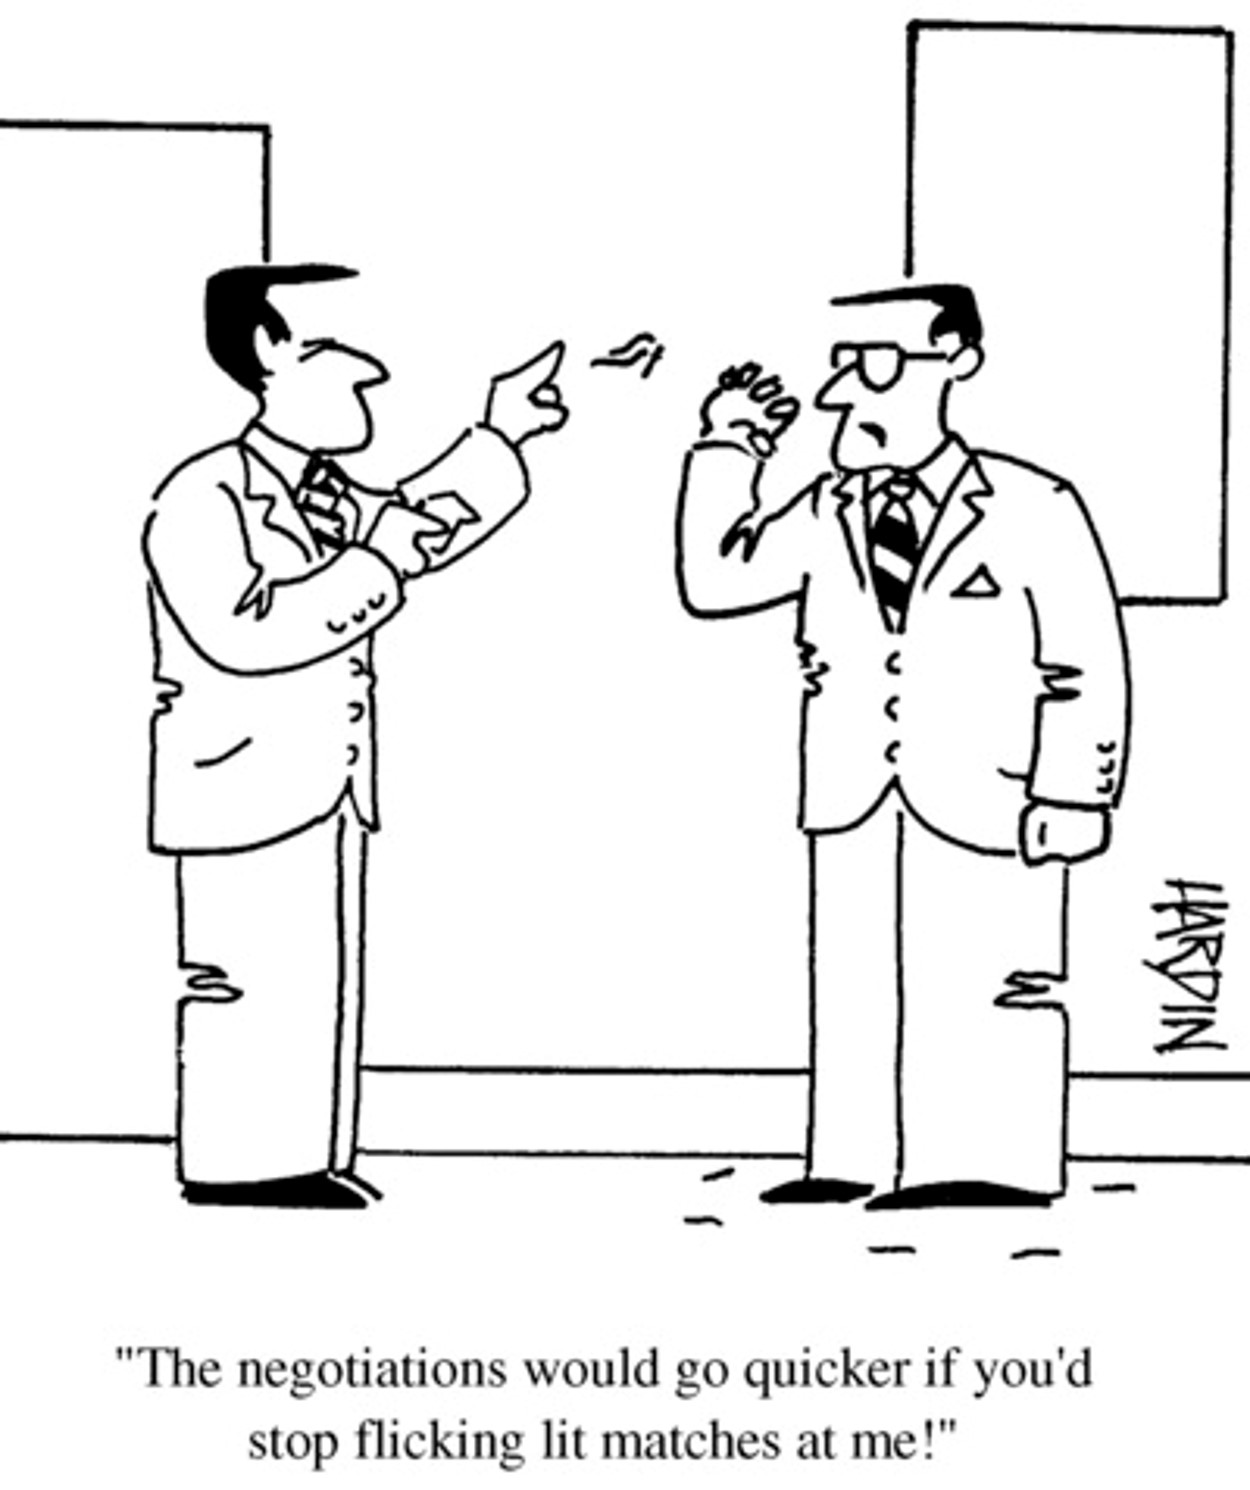 Cartoon, two men in suits, black and white sketch, one saying to the other, the negotiation would go a lot quicker if you stopped flicking lit matches at me